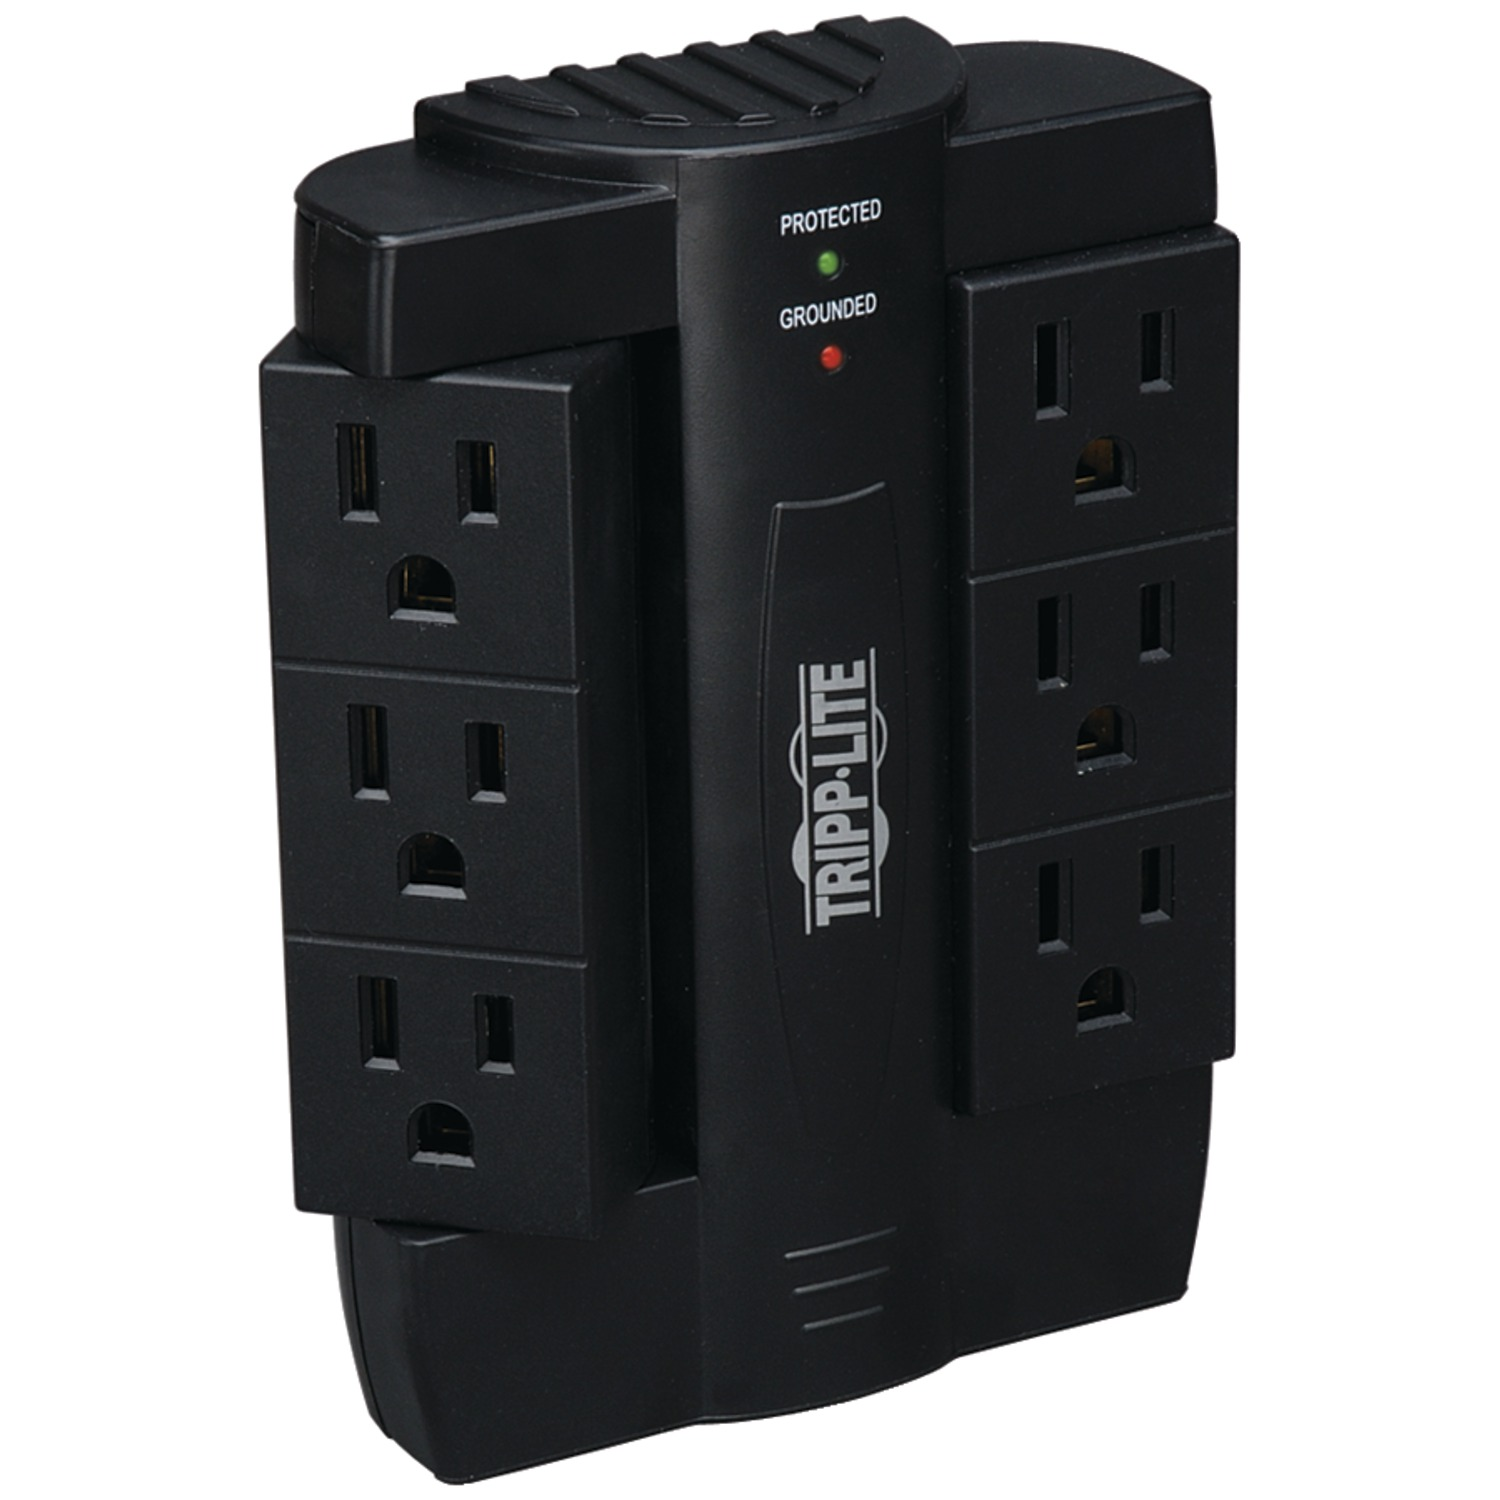 Tripp Lite SWIVEL6 Direct Plug-in Surge Protector With 6 Rotatable Outlets (1,500 Joules) & Tripp Lite SK3-0 Direct Plug-in 3-Outlet Surge Protector